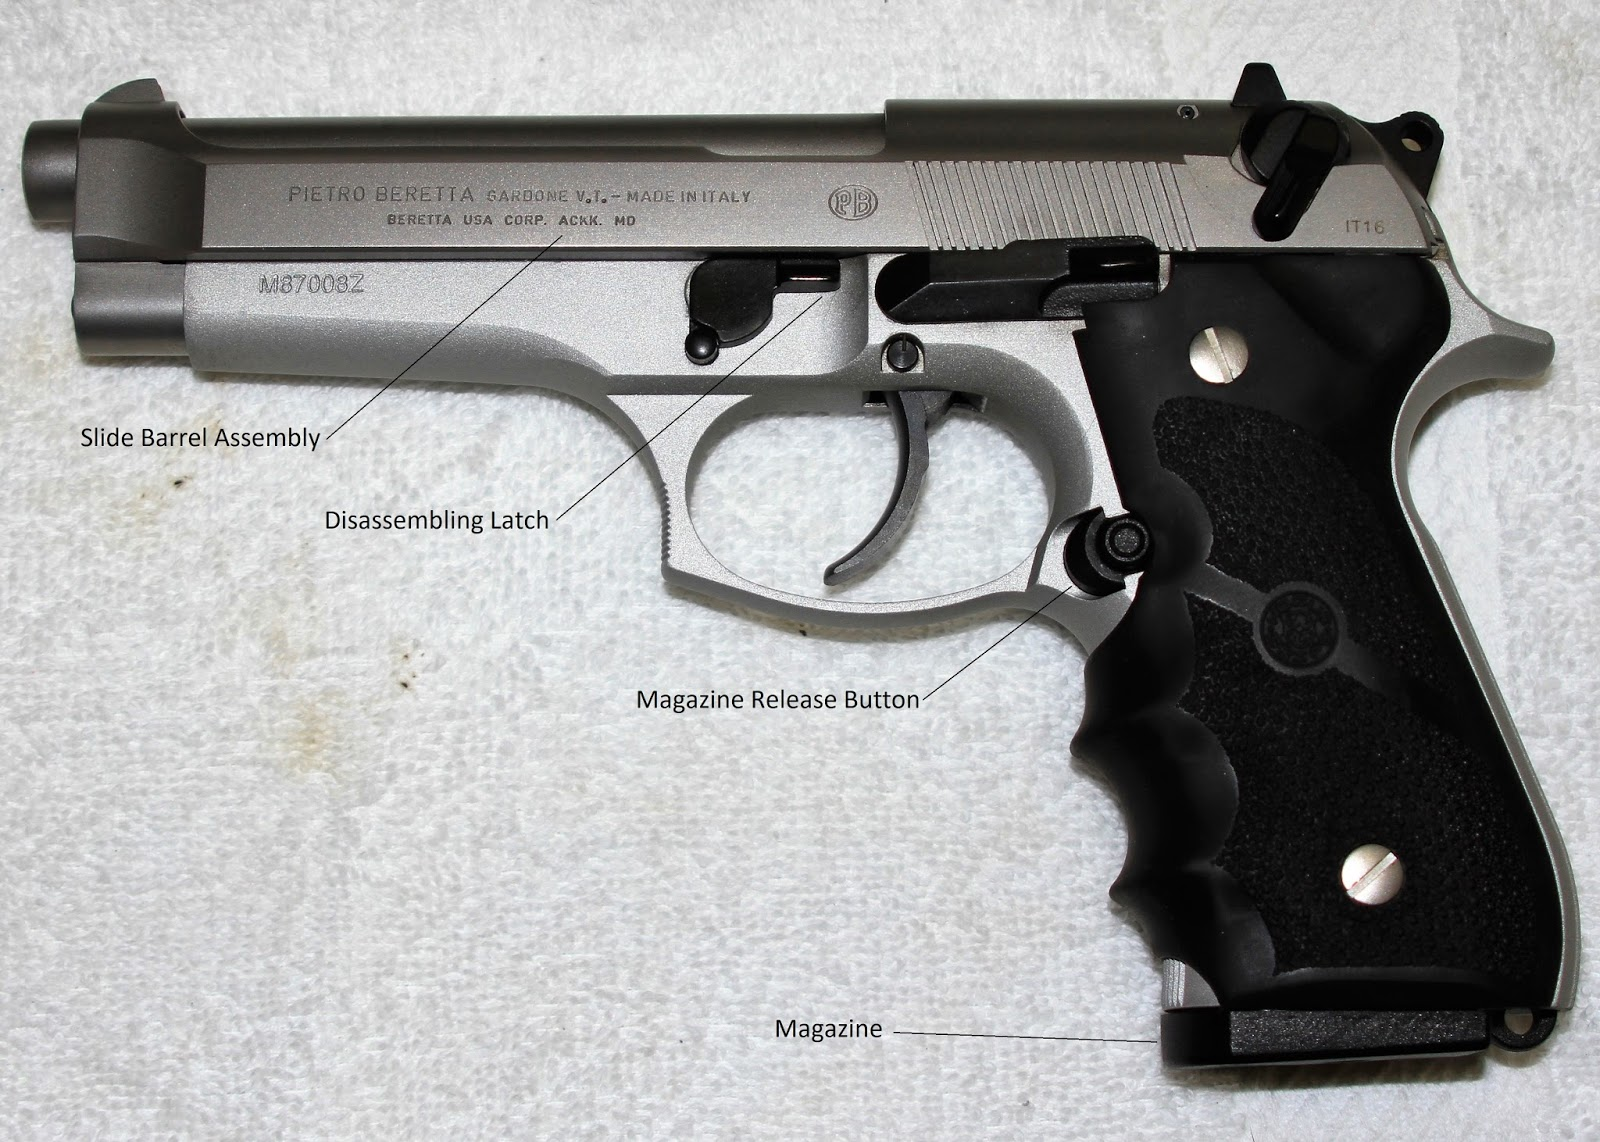 Stripping The Beretta 92 FS Are 1 Remove Magazine And 2 Slide Barrel Assembly For Reference Purposes Ive Labeled Parts Of